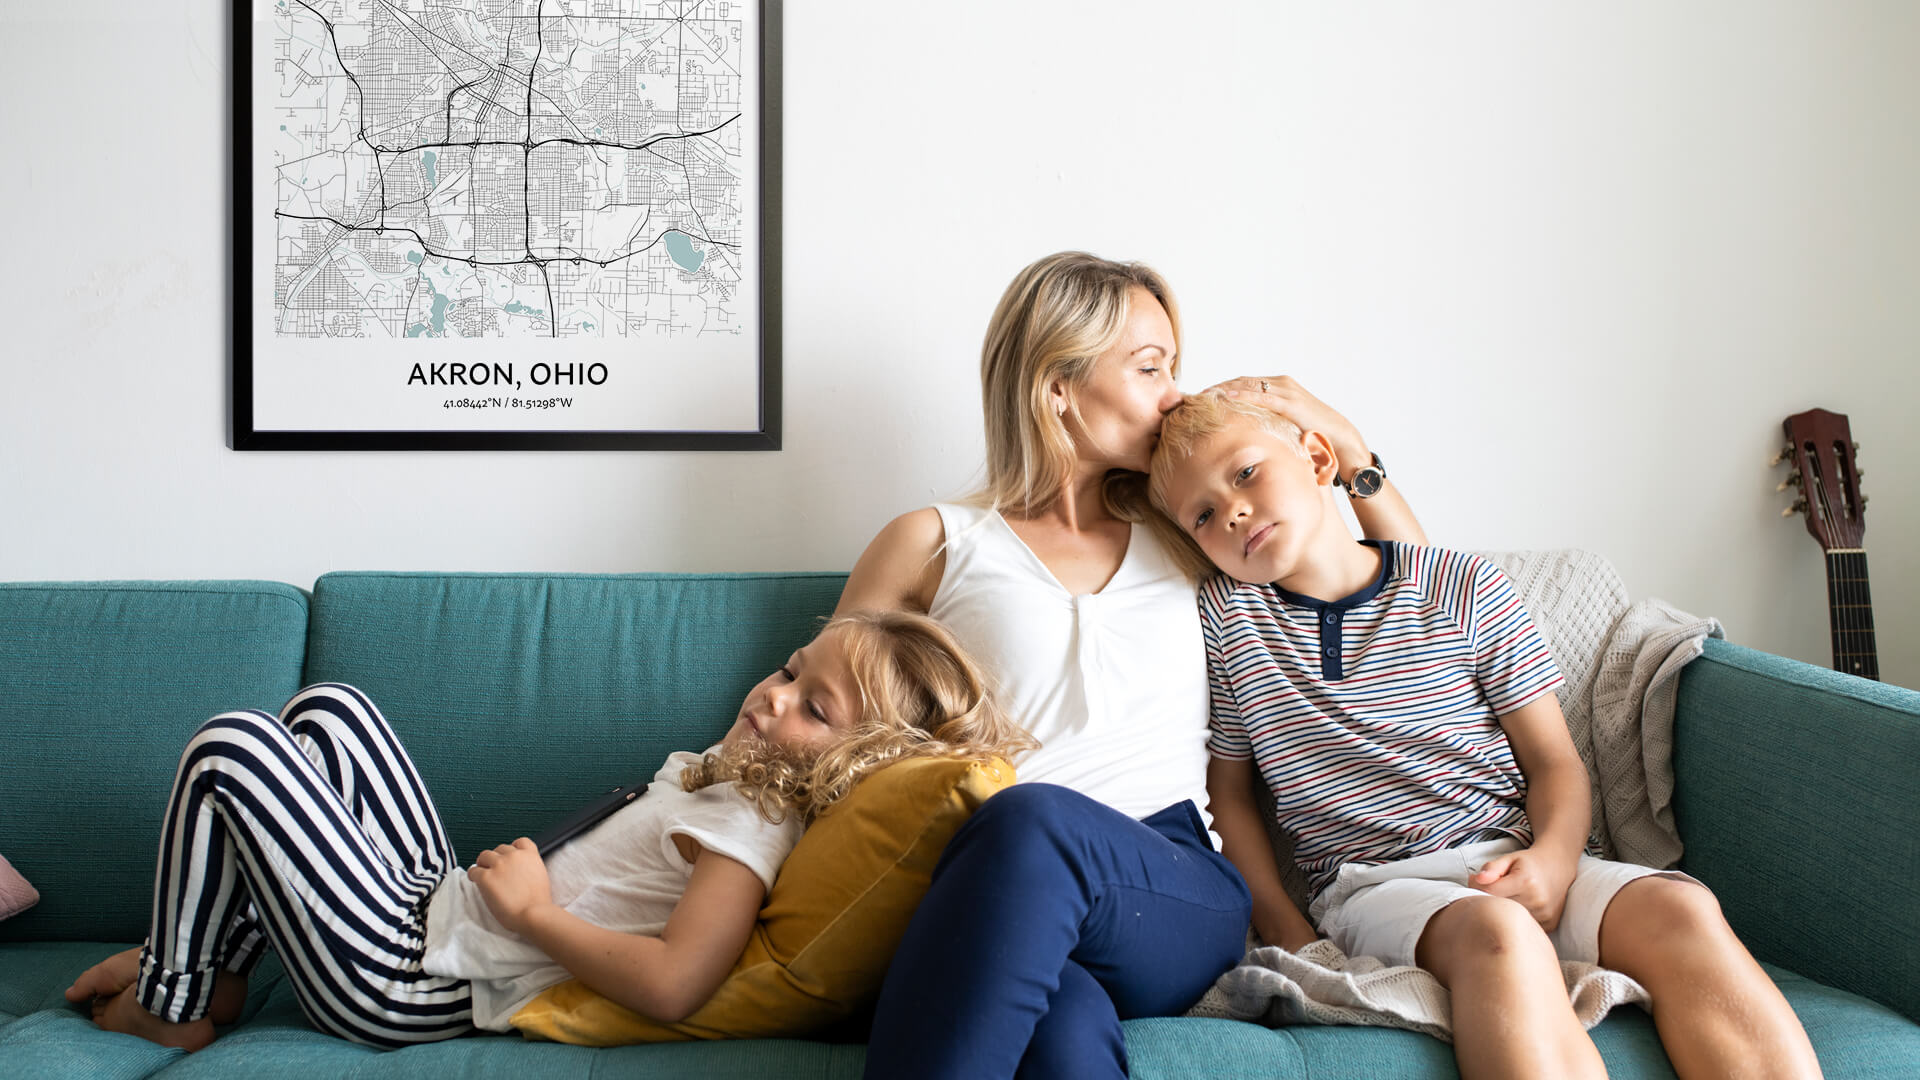 Akron map poster